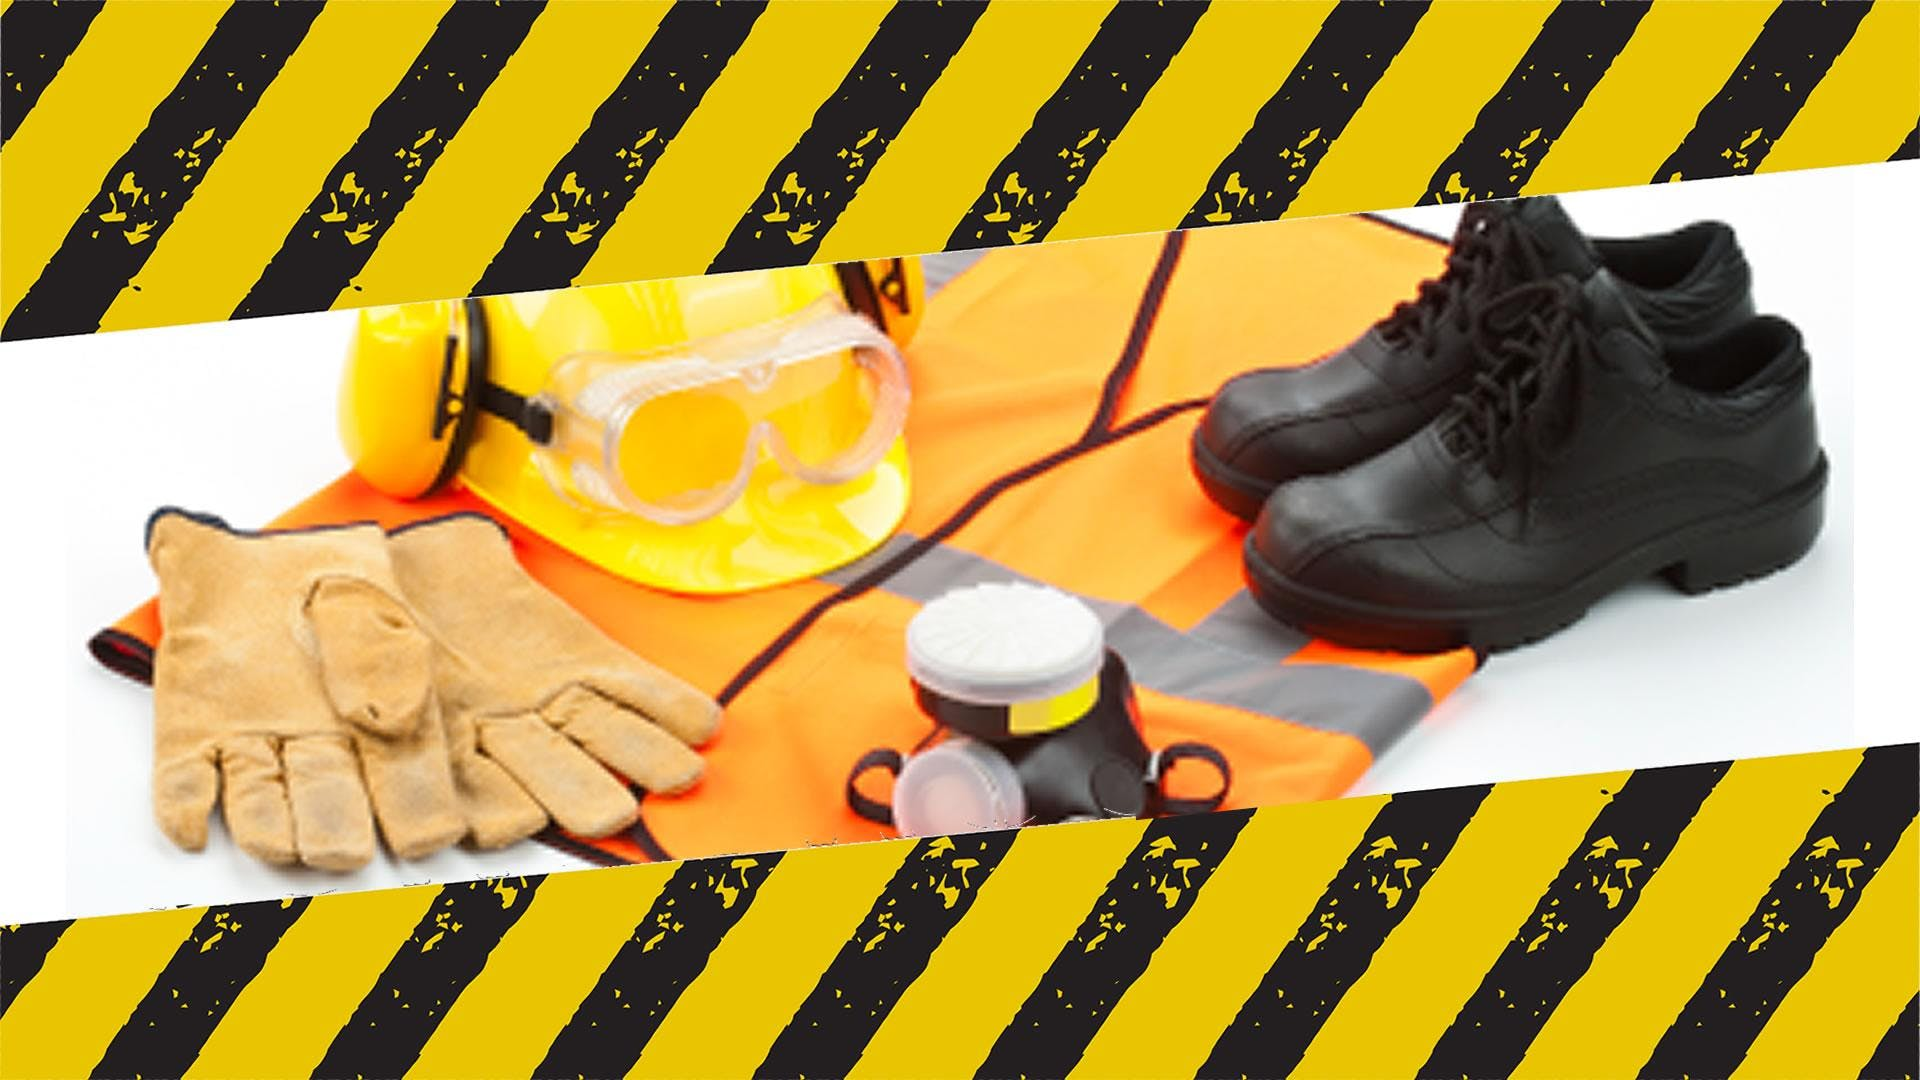 [PAID] Public Training ISO 45001 - New Workplace Safety Standards